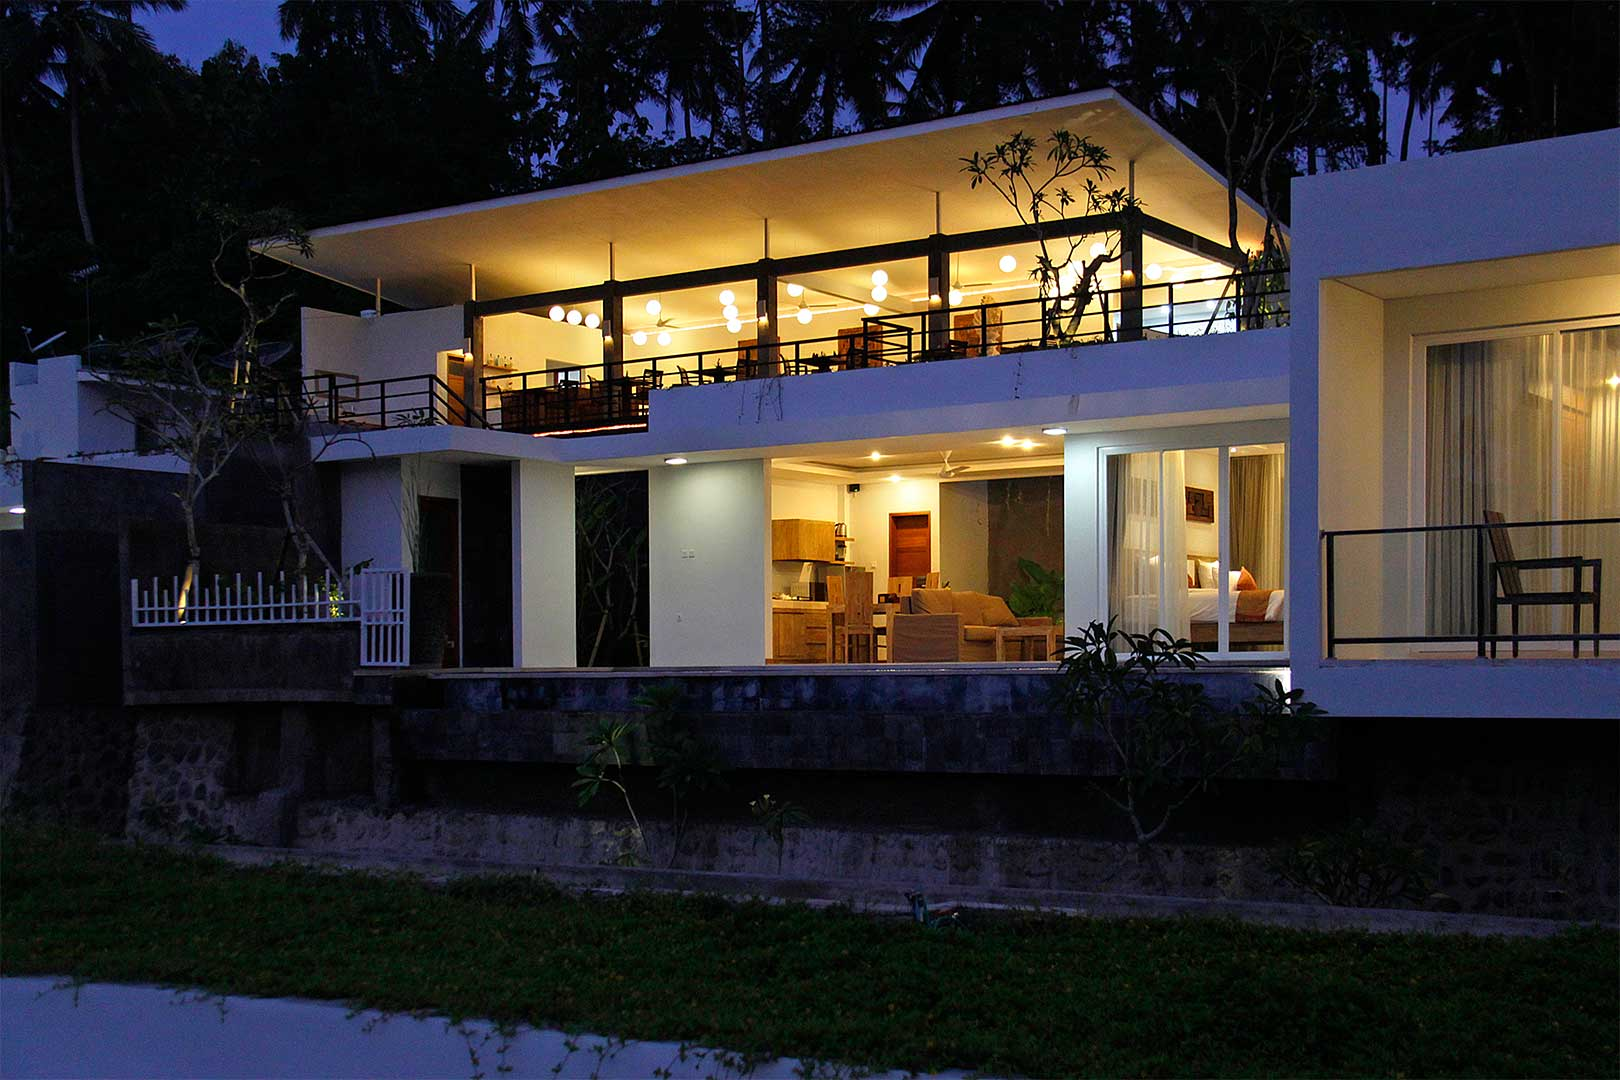 Upstairs-Yoga-Hall-at-Night-and-Villa-Below